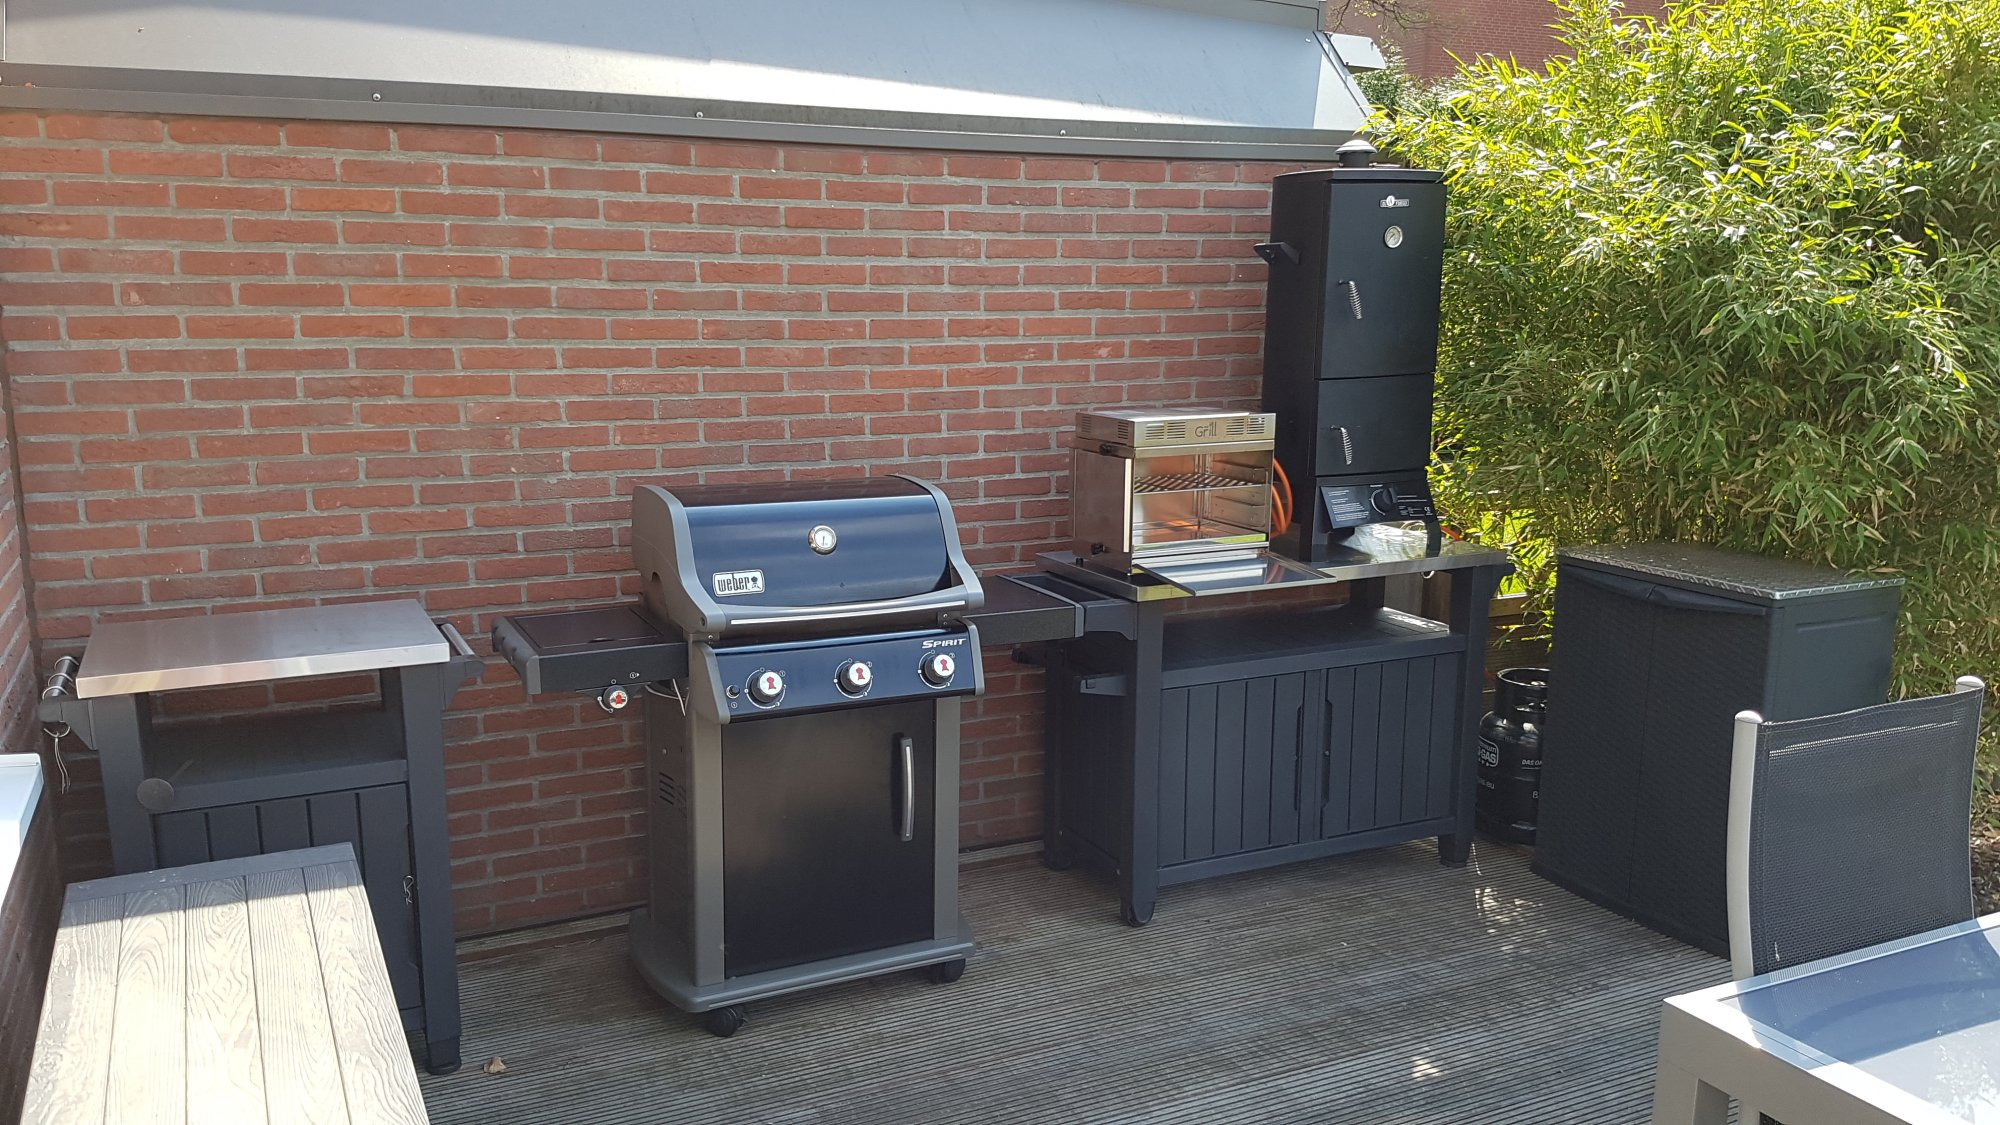 Aussenkuche grillsportverein for Gaskochfeld outdoor kuche